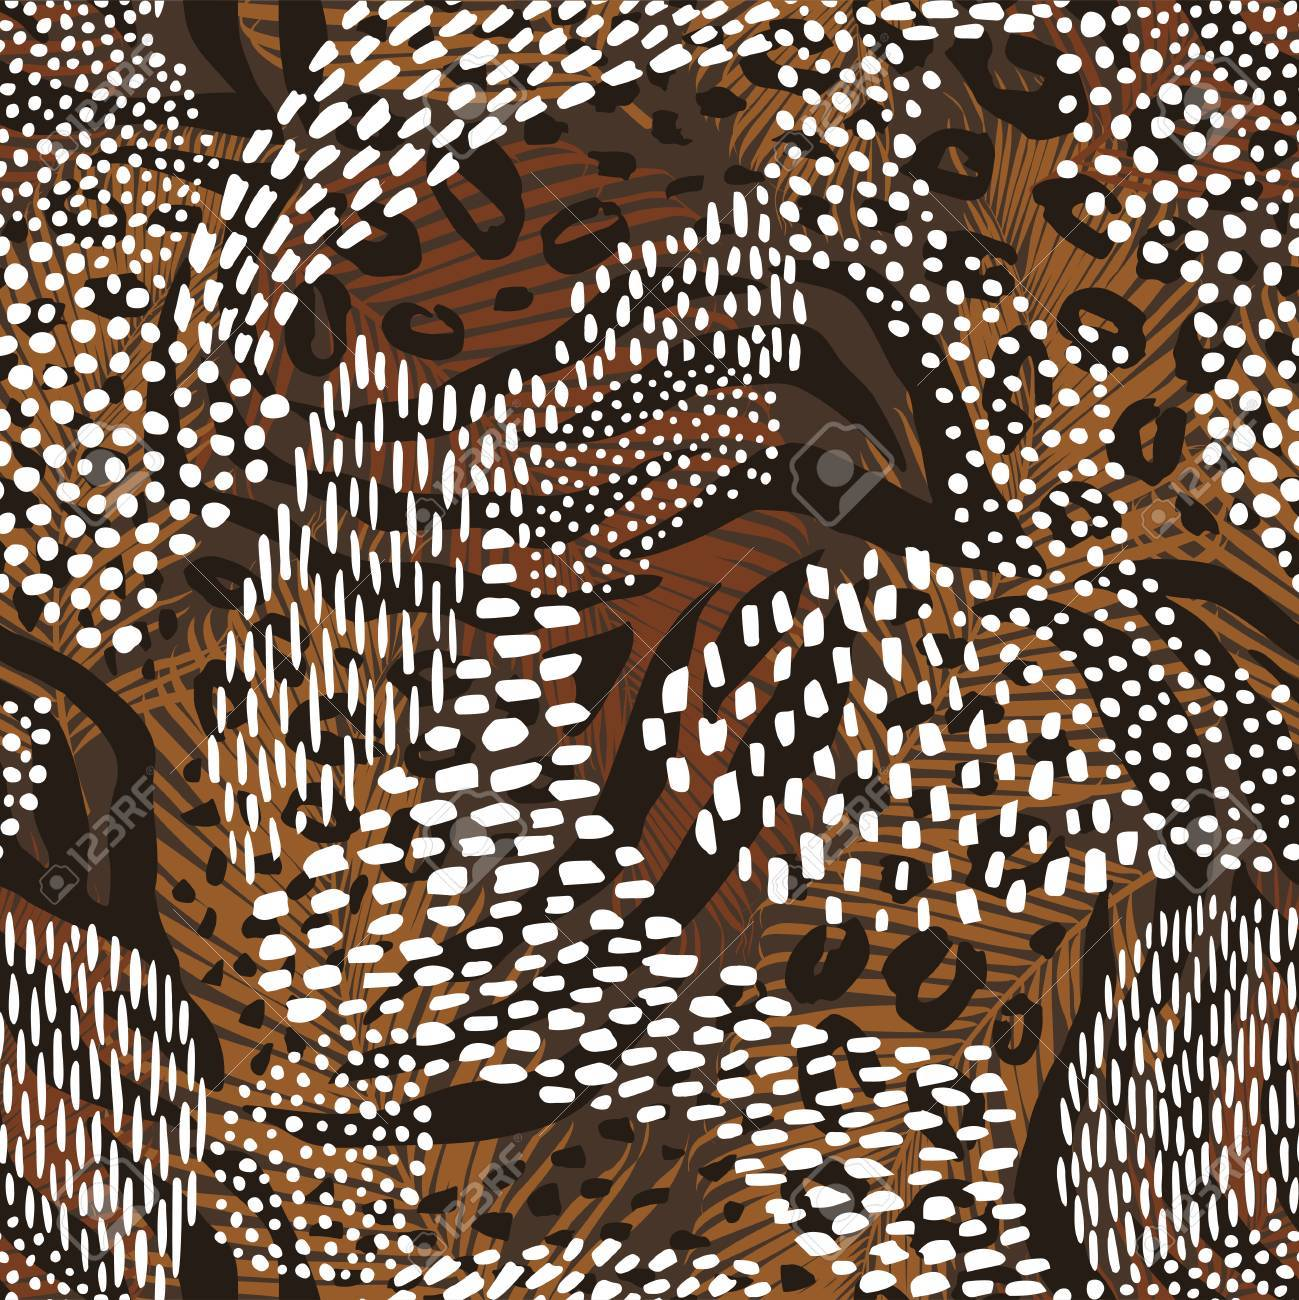 Abstract geometric seamless pattern with animal print. - 88070306